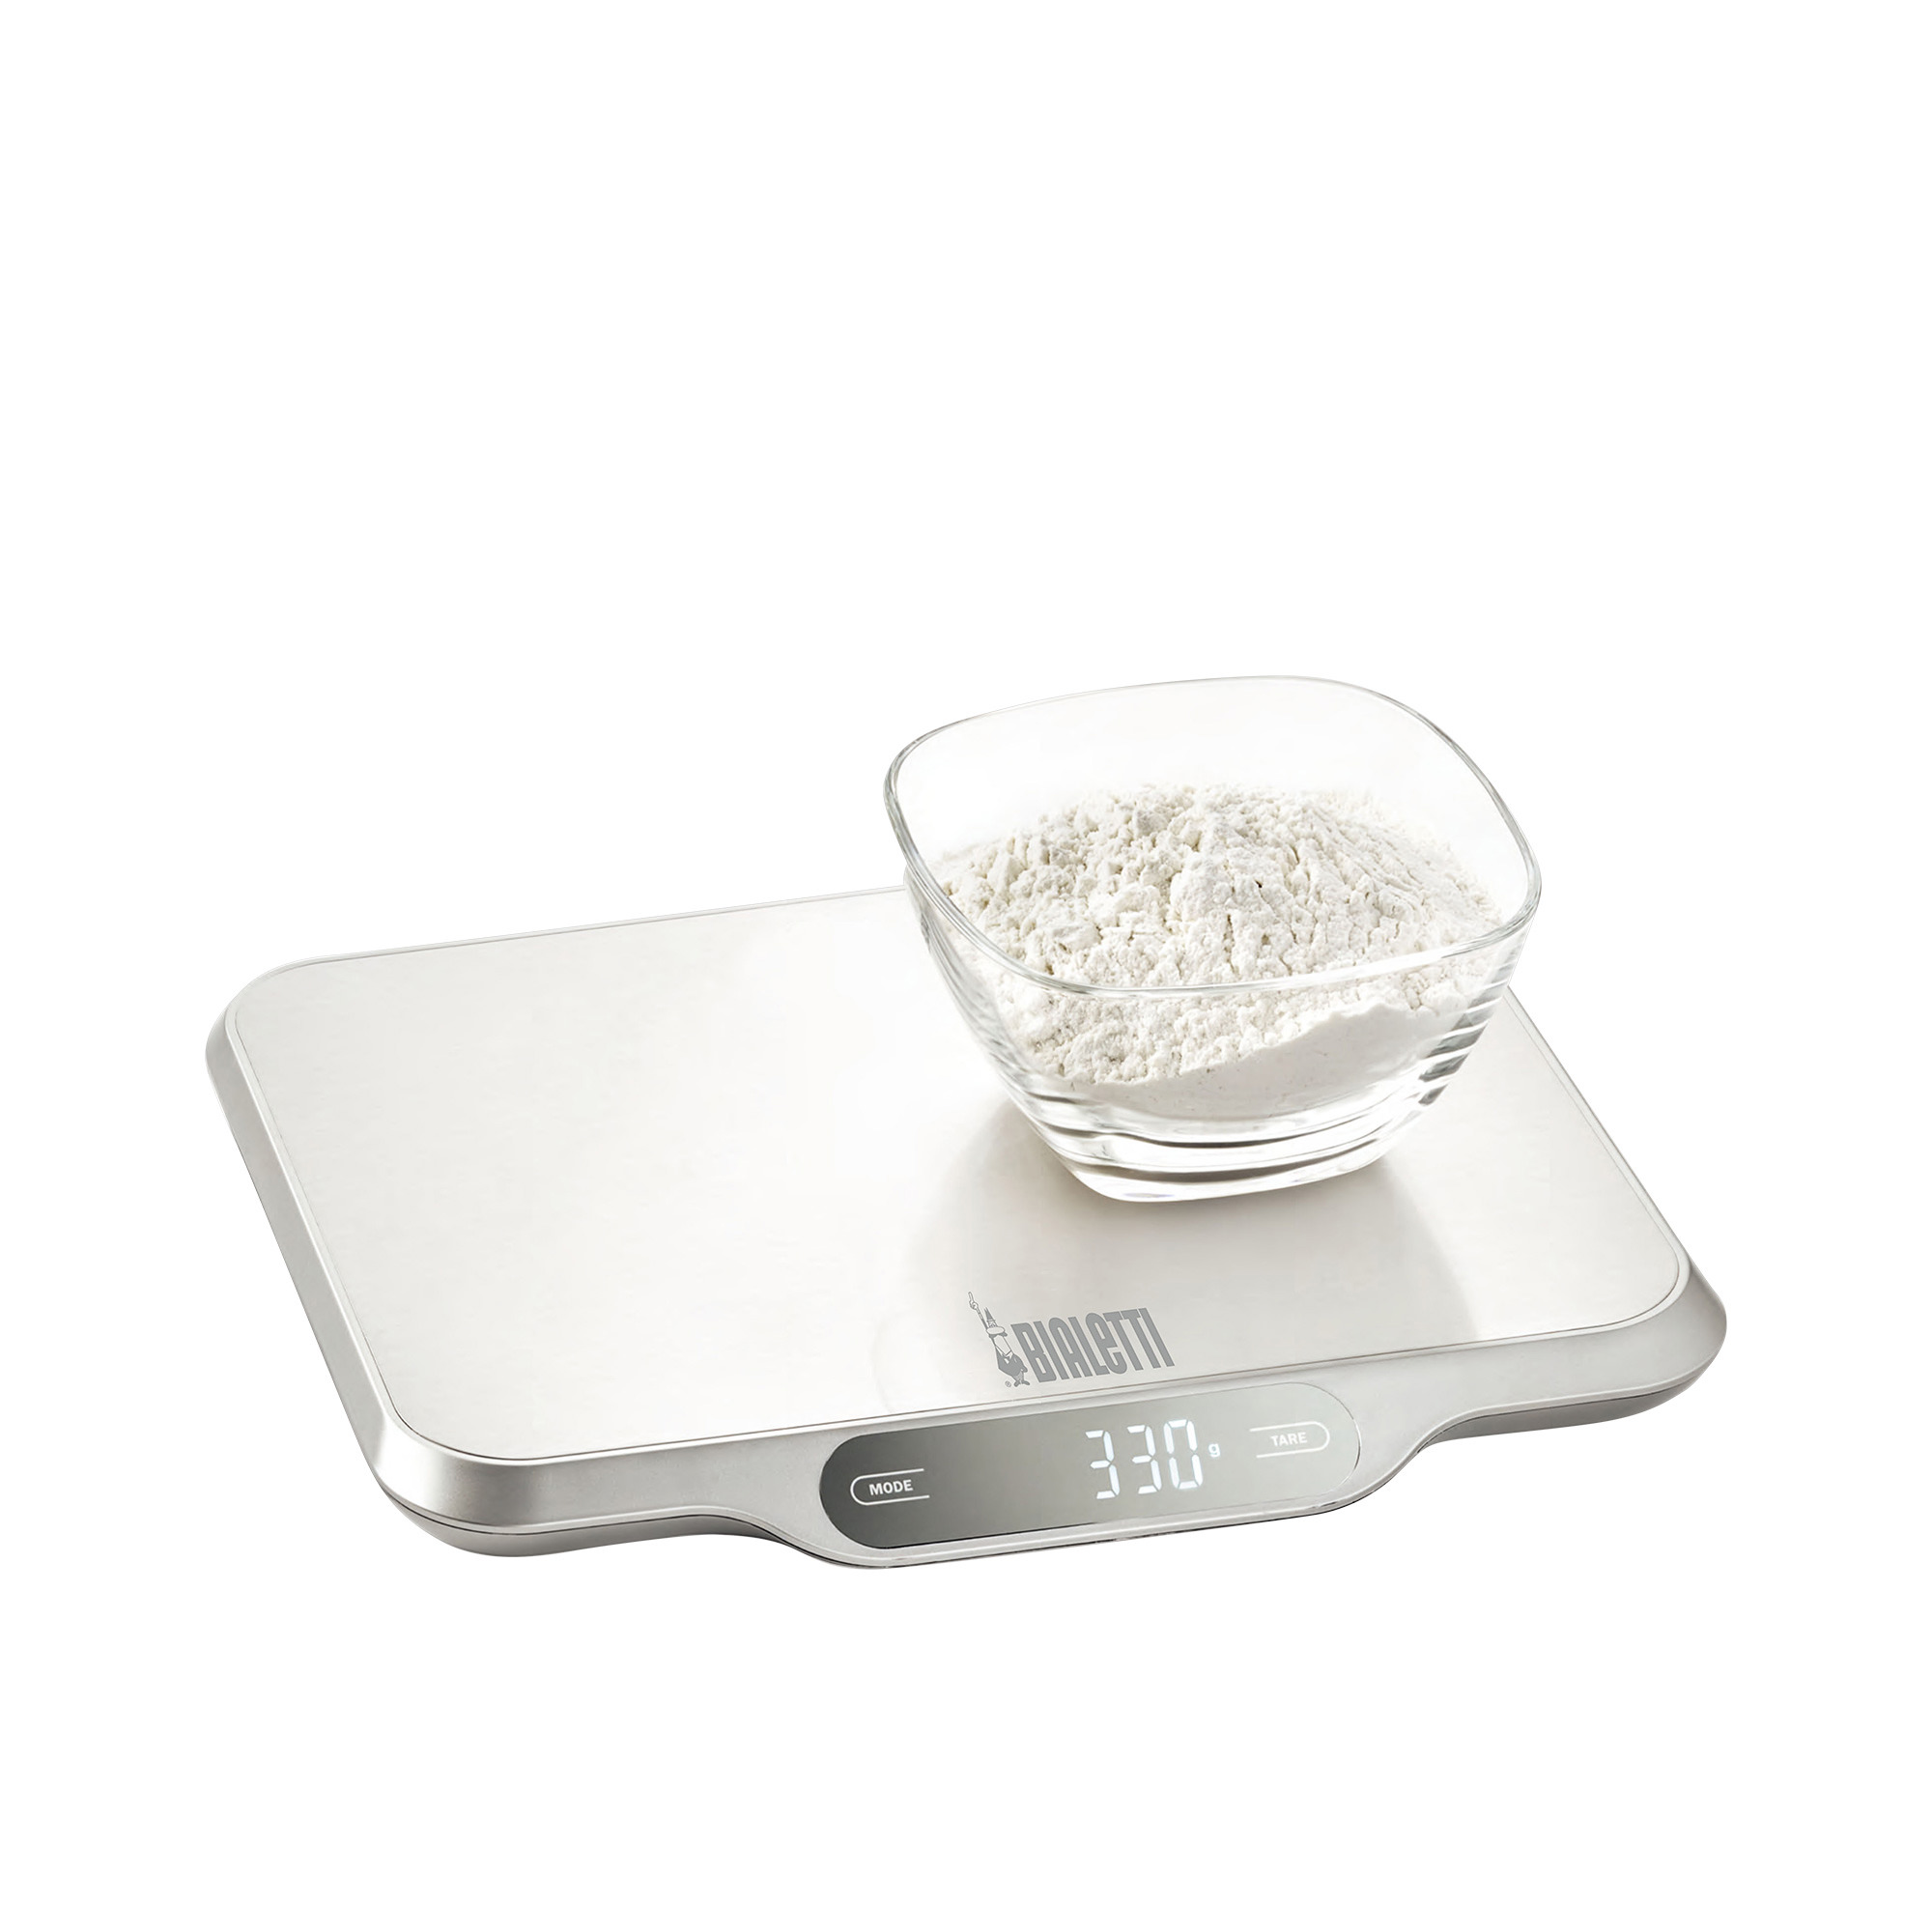 Bialetti Digital Kitchen Scale 15kg Stainless Steel